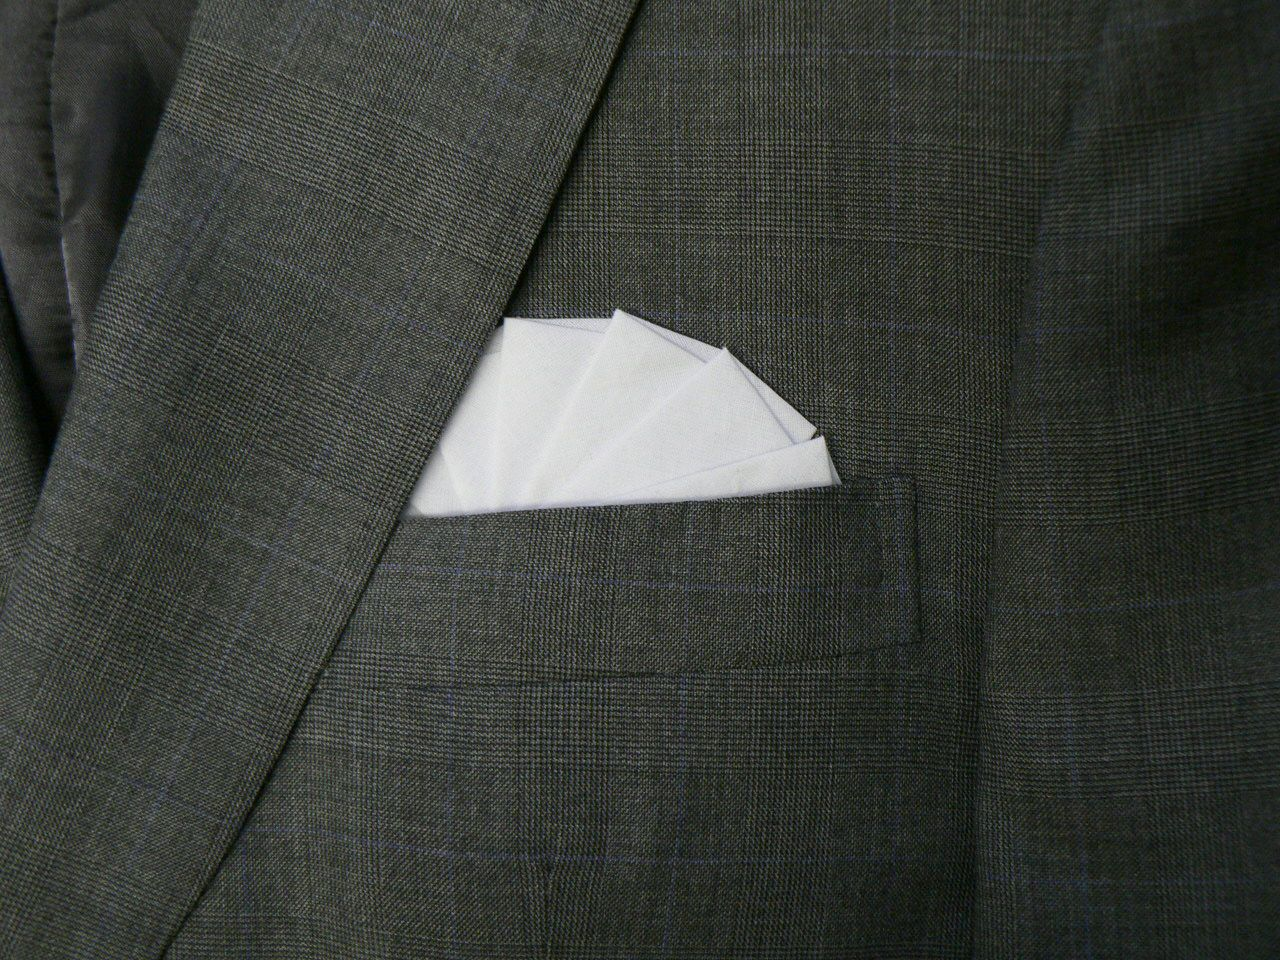 The perfect pocket square